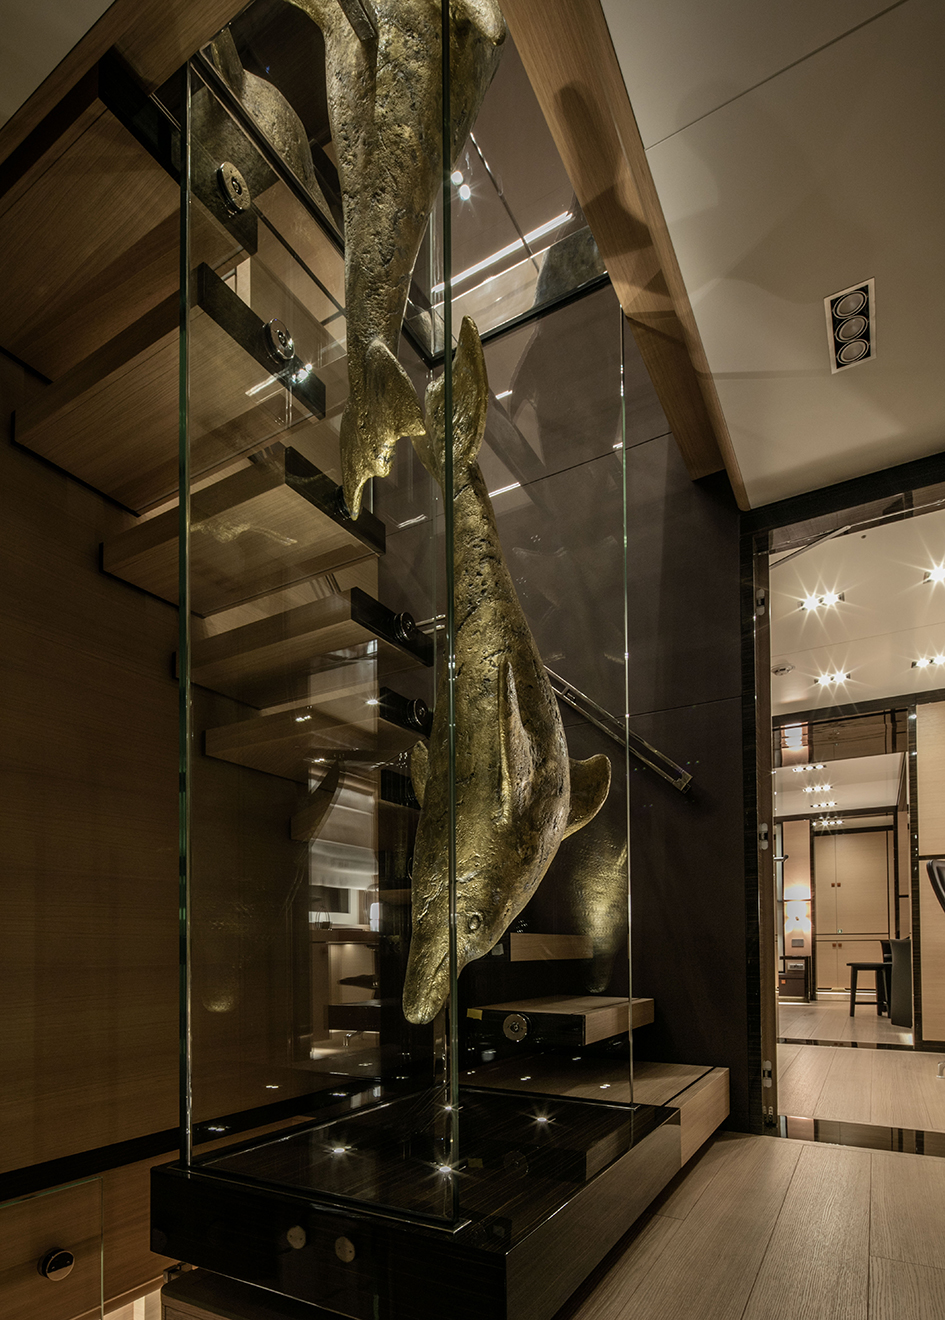 the-staircase-of-the-cantiere-delle-marche-nauta-air-111-yacht-hyhma